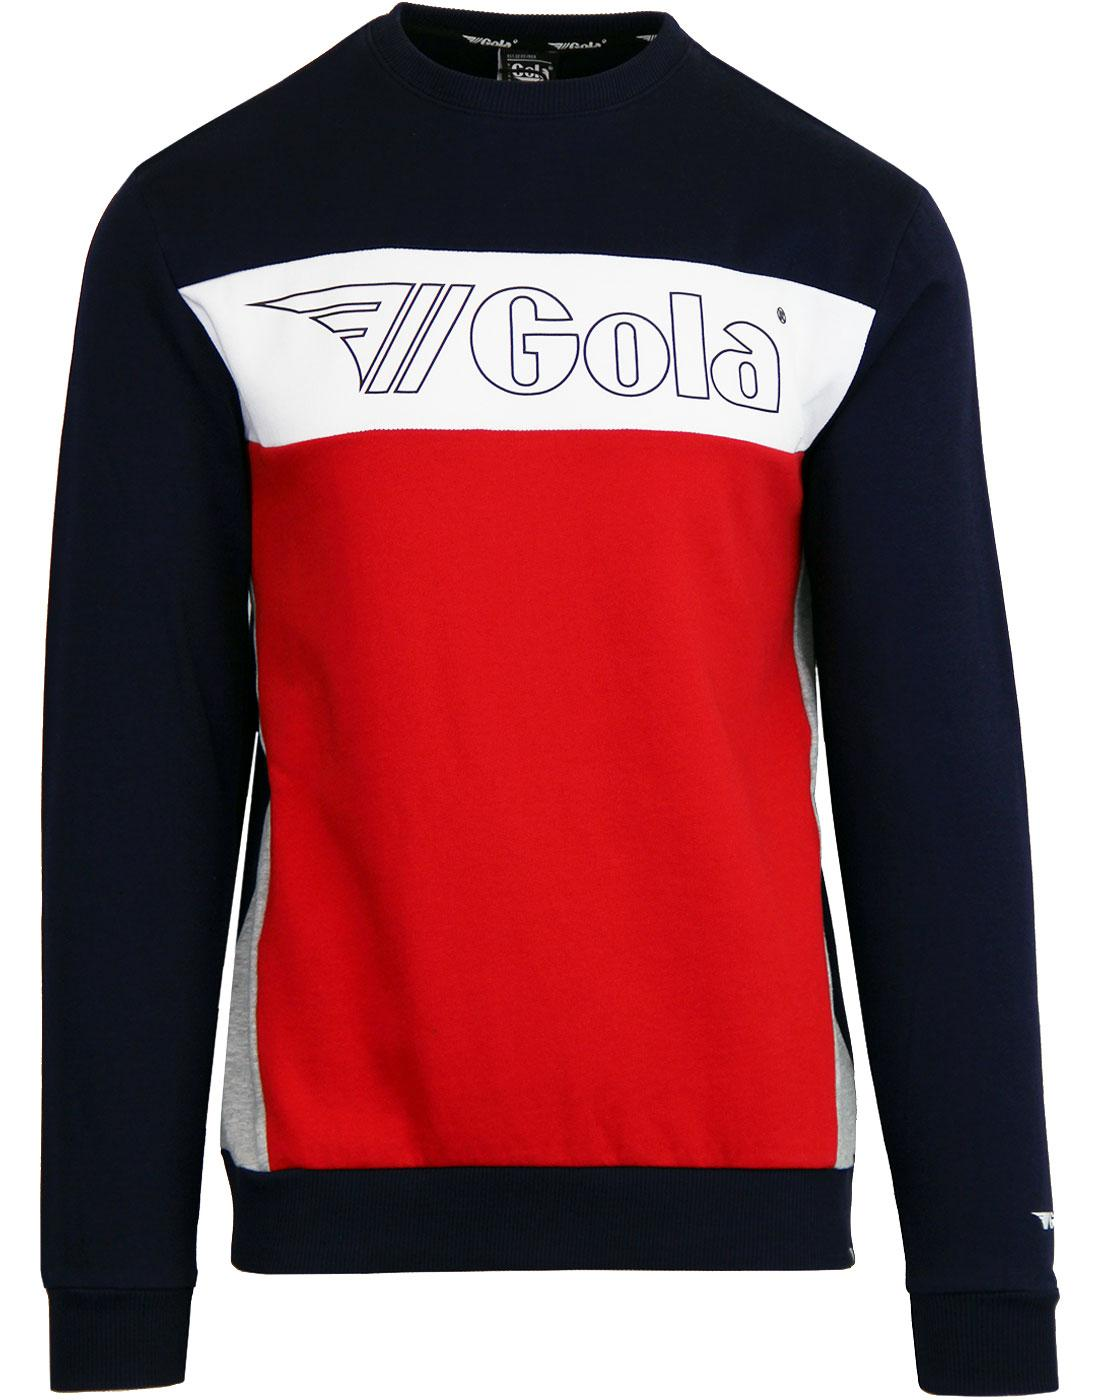 Ryan GOLA CLASSICS Retro 80's Panel Sweater - Navy